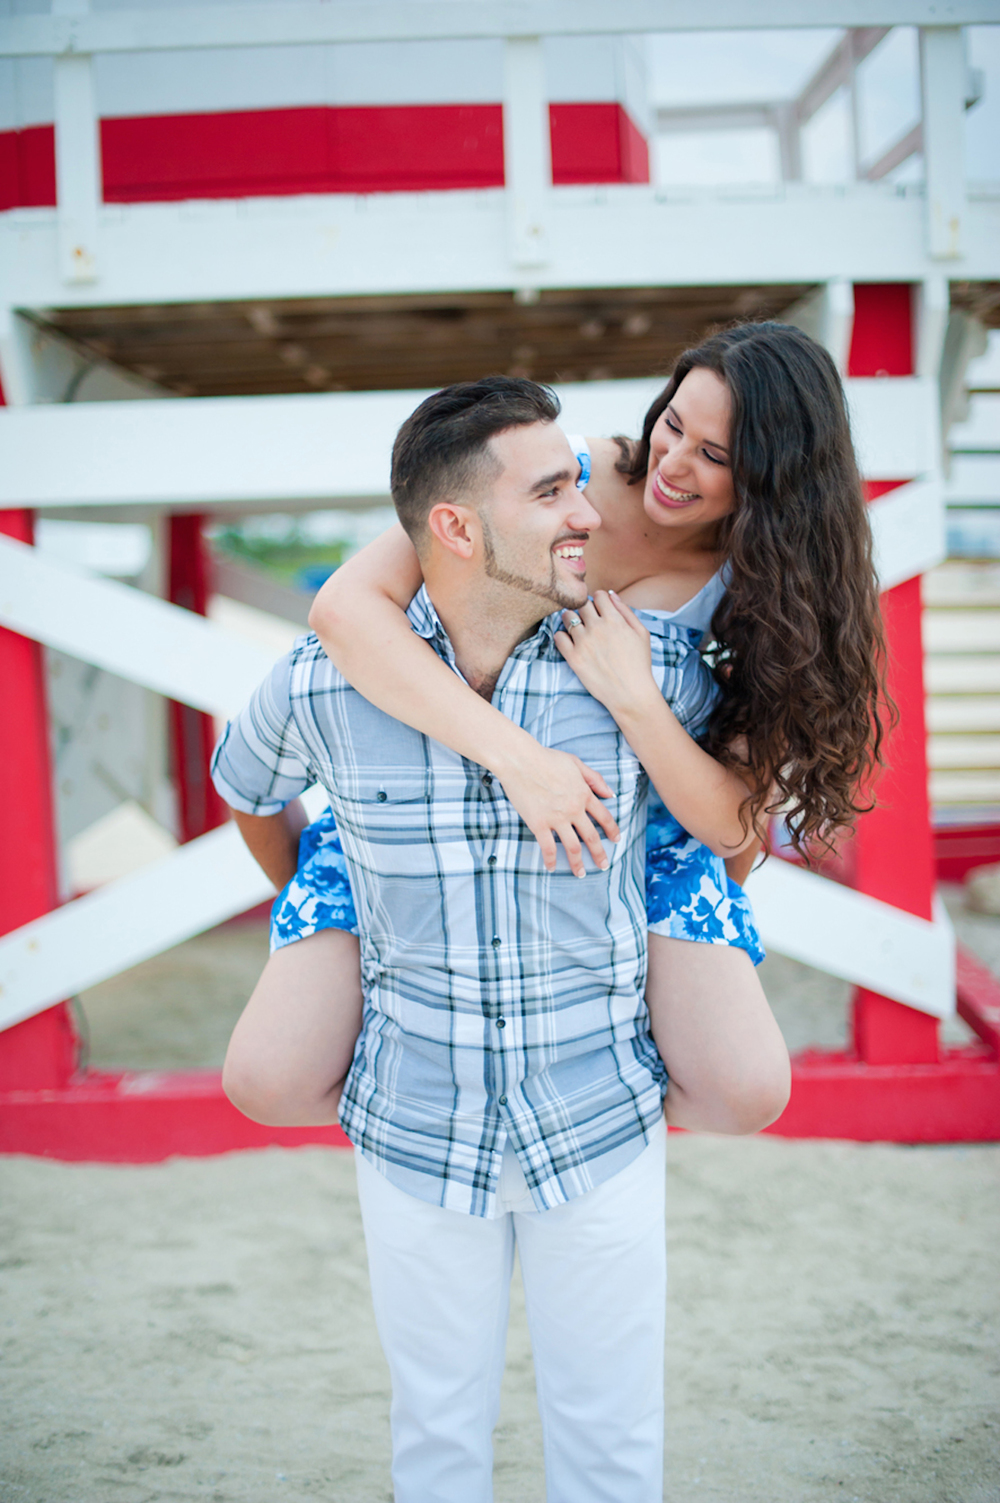 FLYTOGRAPHER | Vacation Photographers in Miami - Kristy & Vic